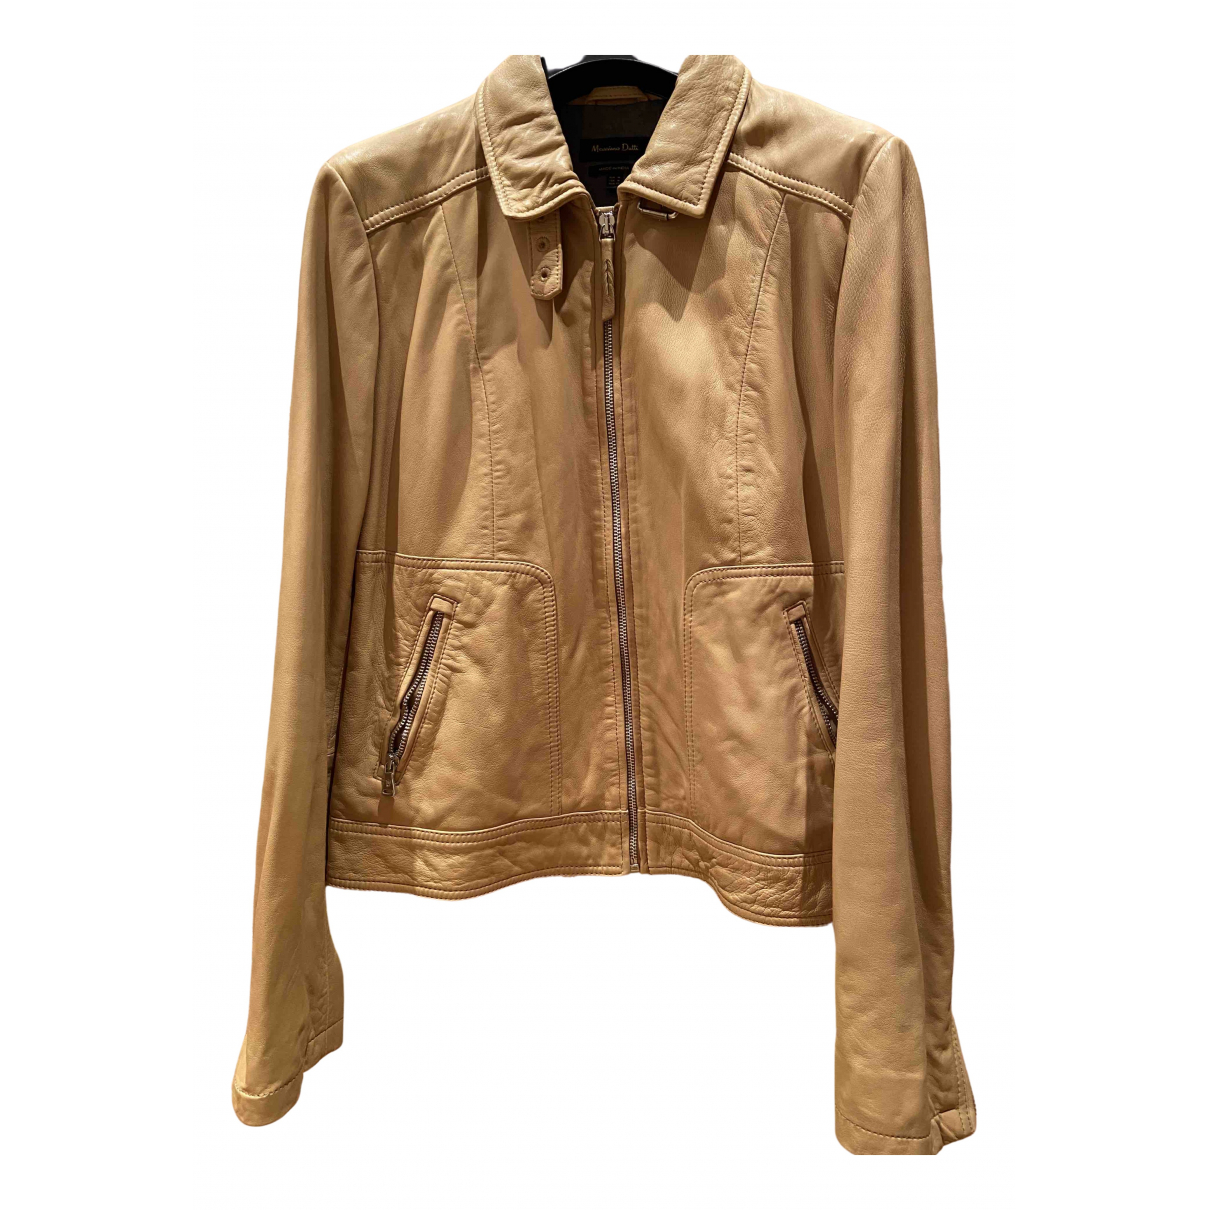 Massimo Dutti \N Beige Shearling Leather jacket for Women 38 FR